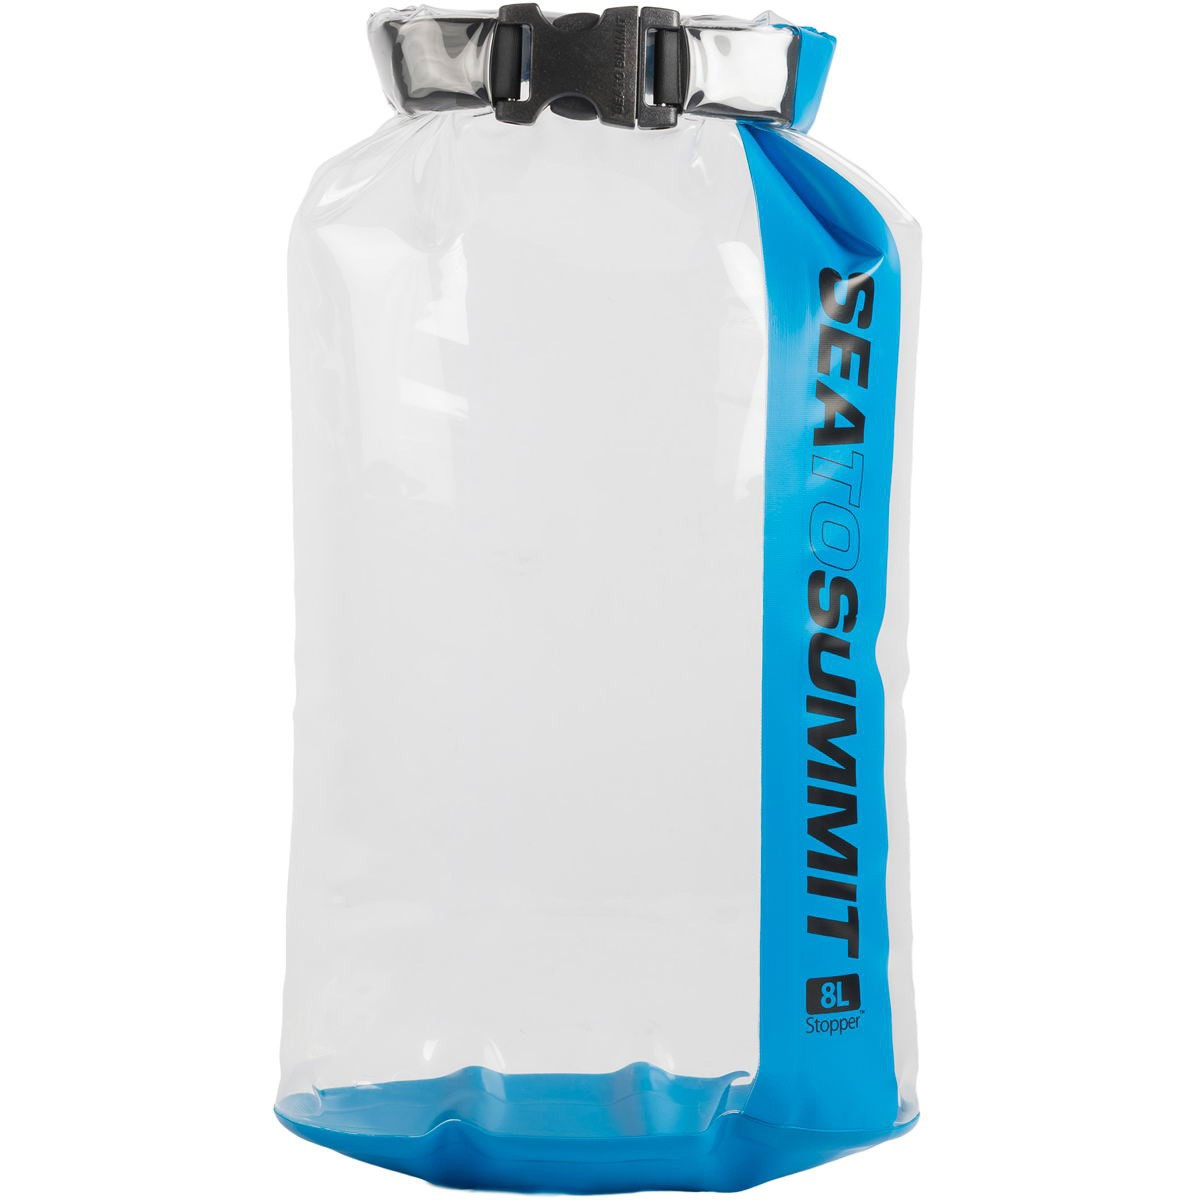 Sea To Summit Stopper Clear Dry Bag 8L Blue